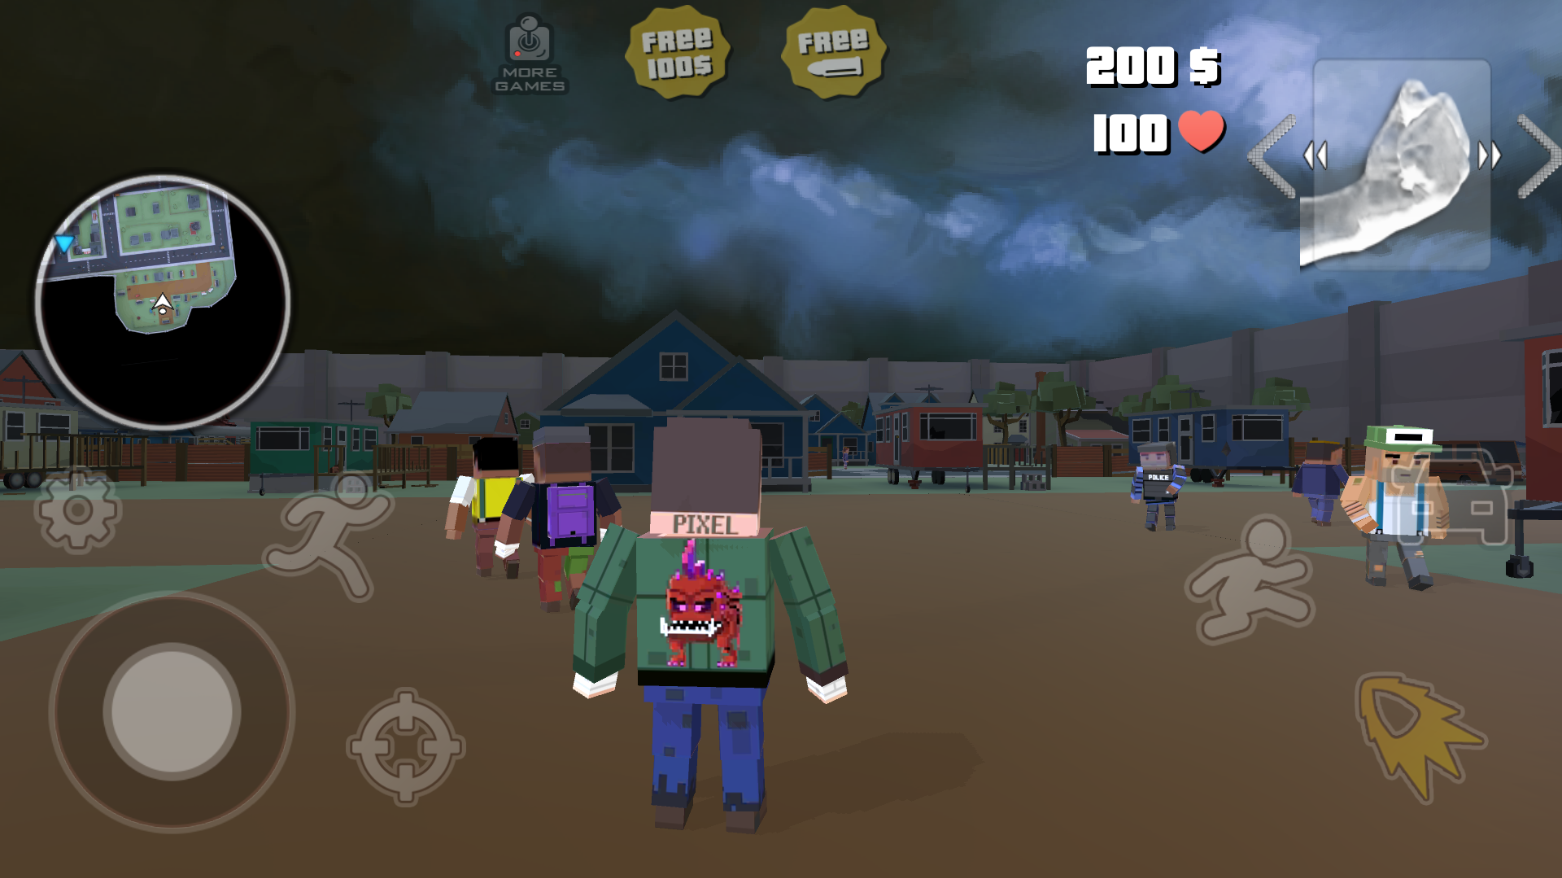 True Gangster Stories: Pixel Two Worlds 1 01 APK Download - Android